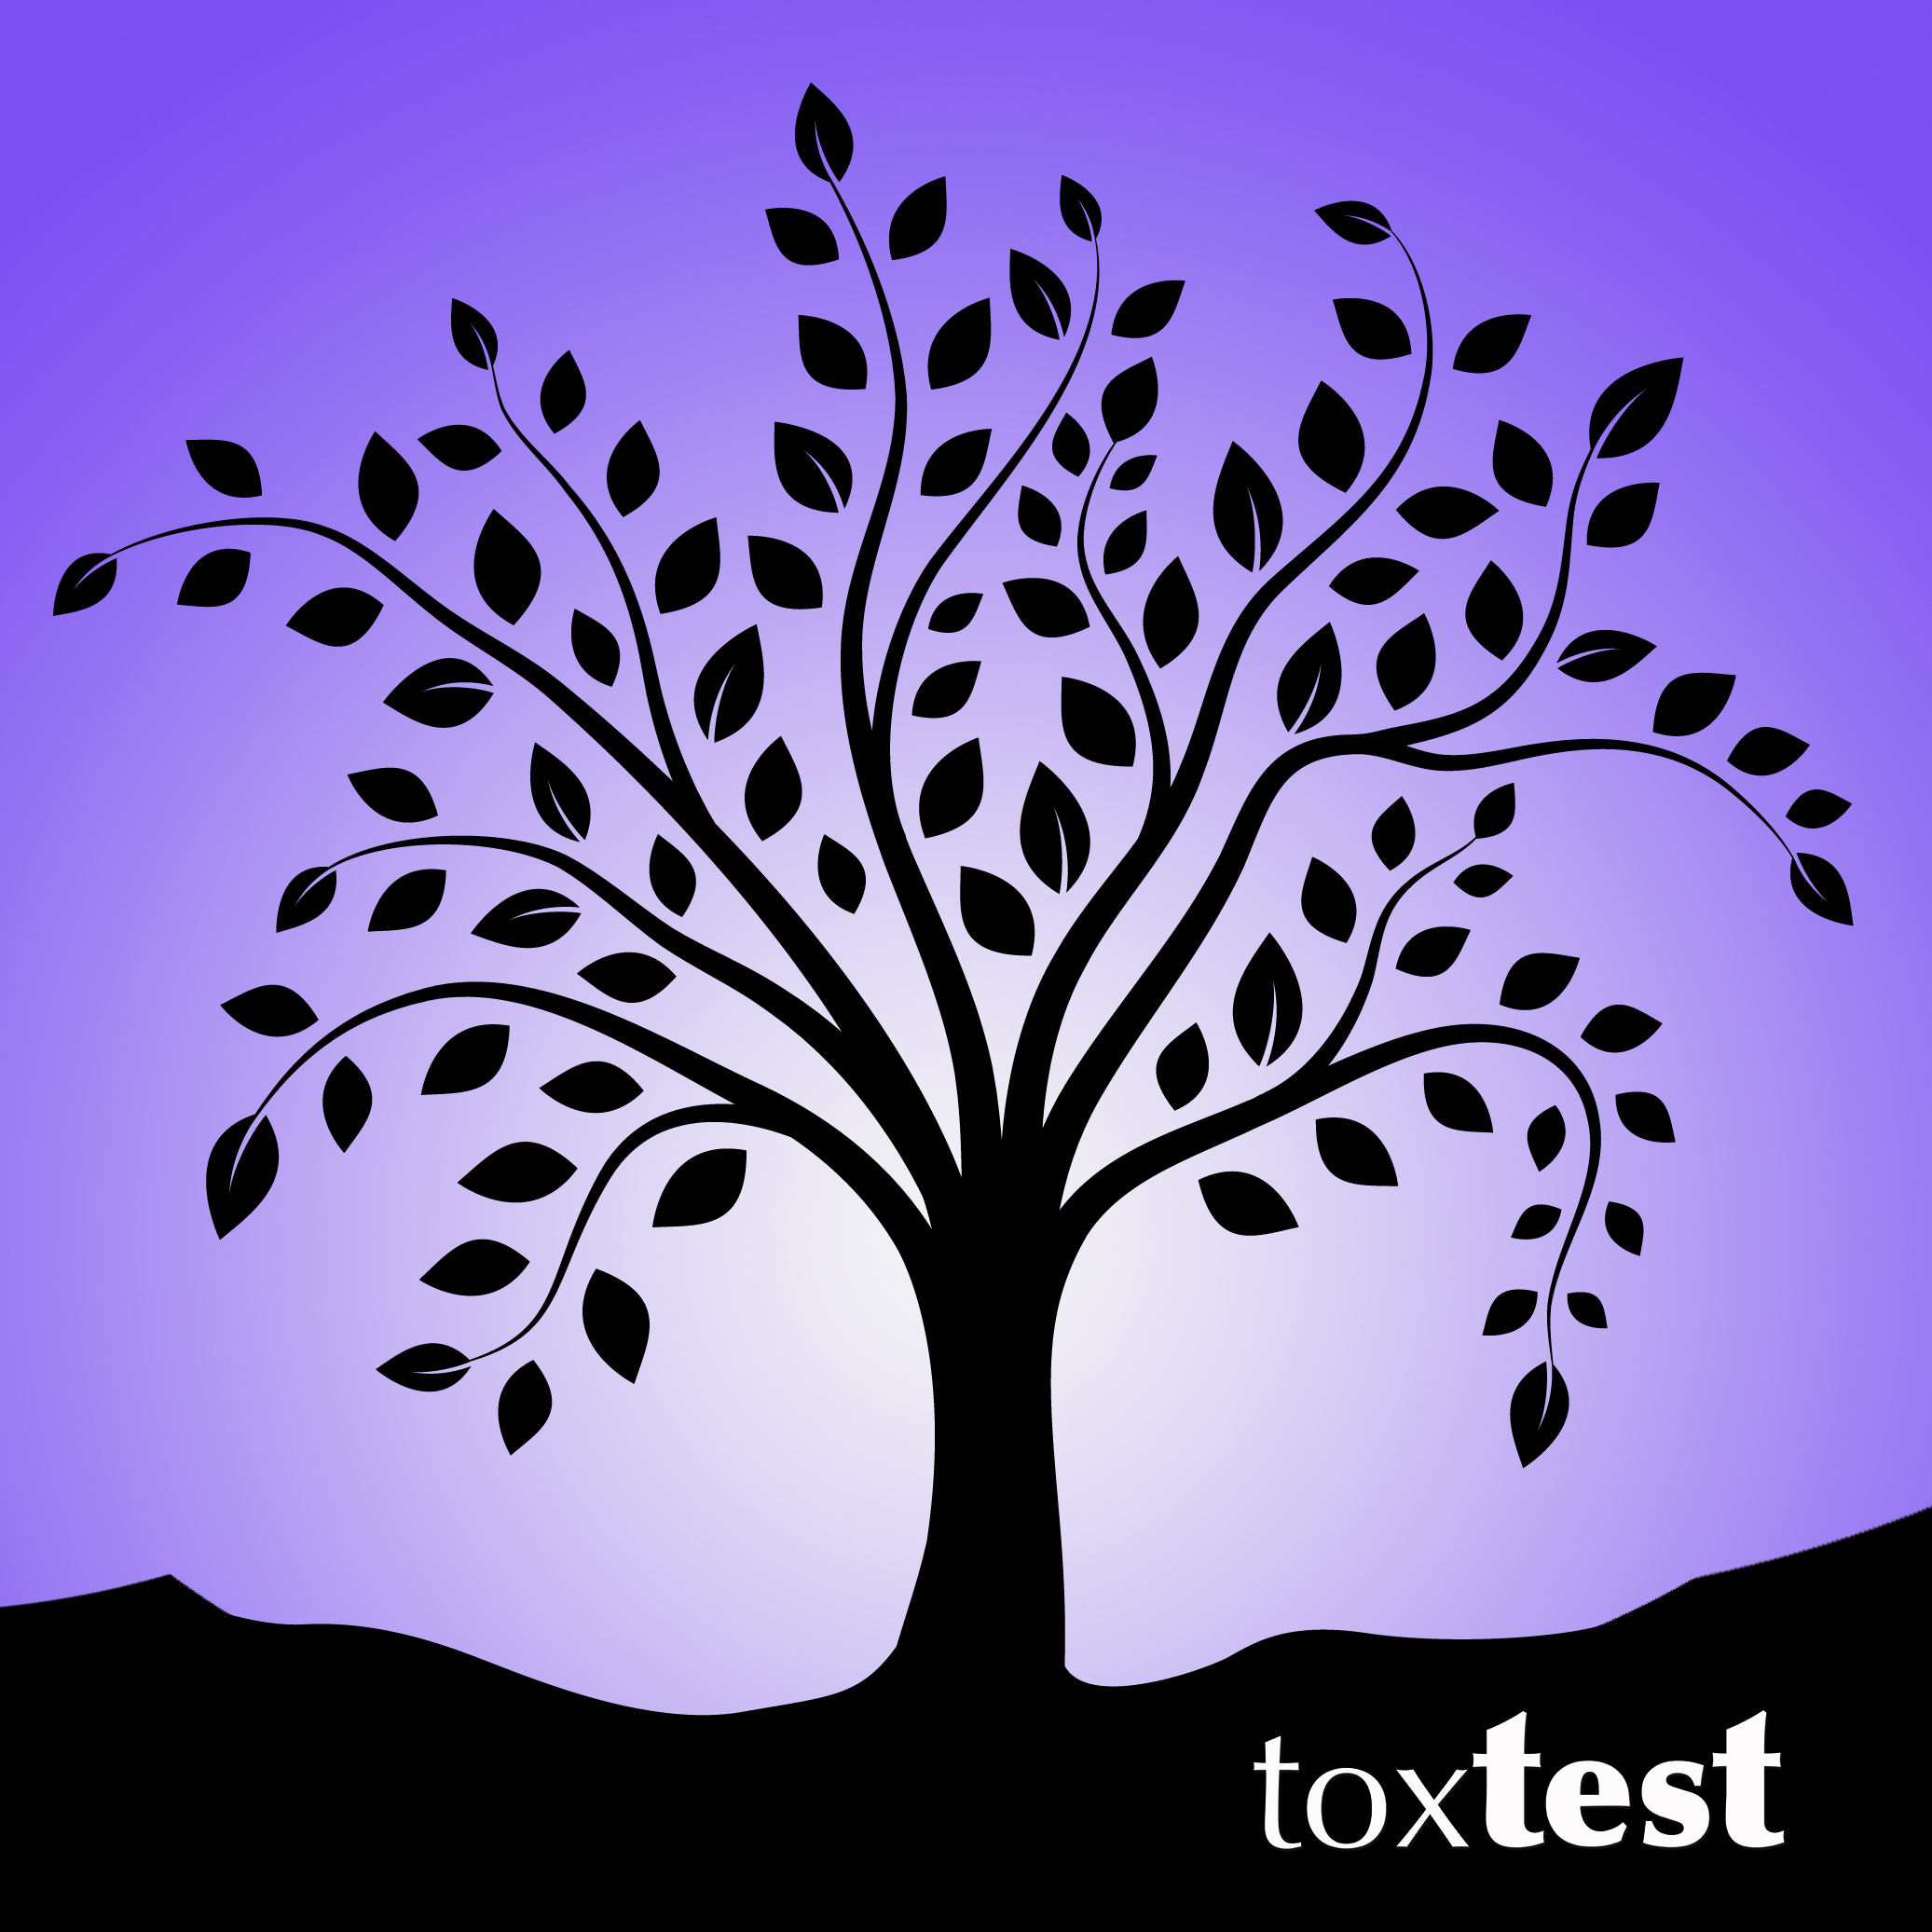 tree-toxtest-name-violet-2000